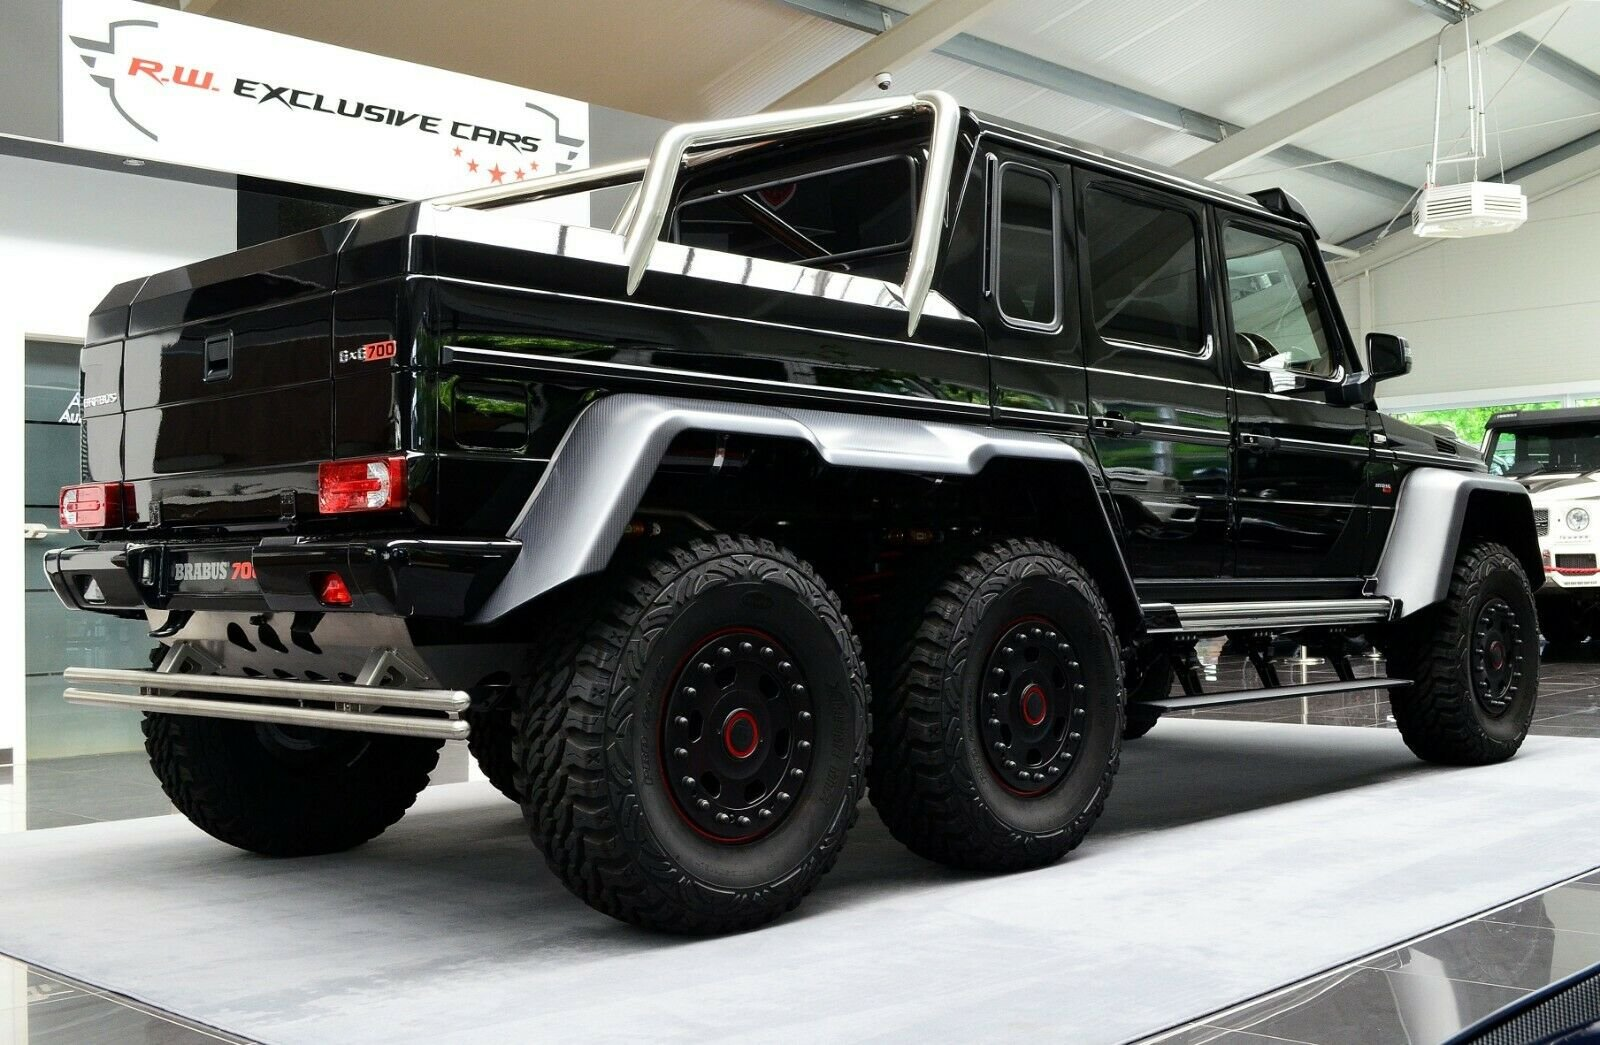 Mercedes-Benz G 63 AMG 6x6 Brabus700 - 1of15 (10)